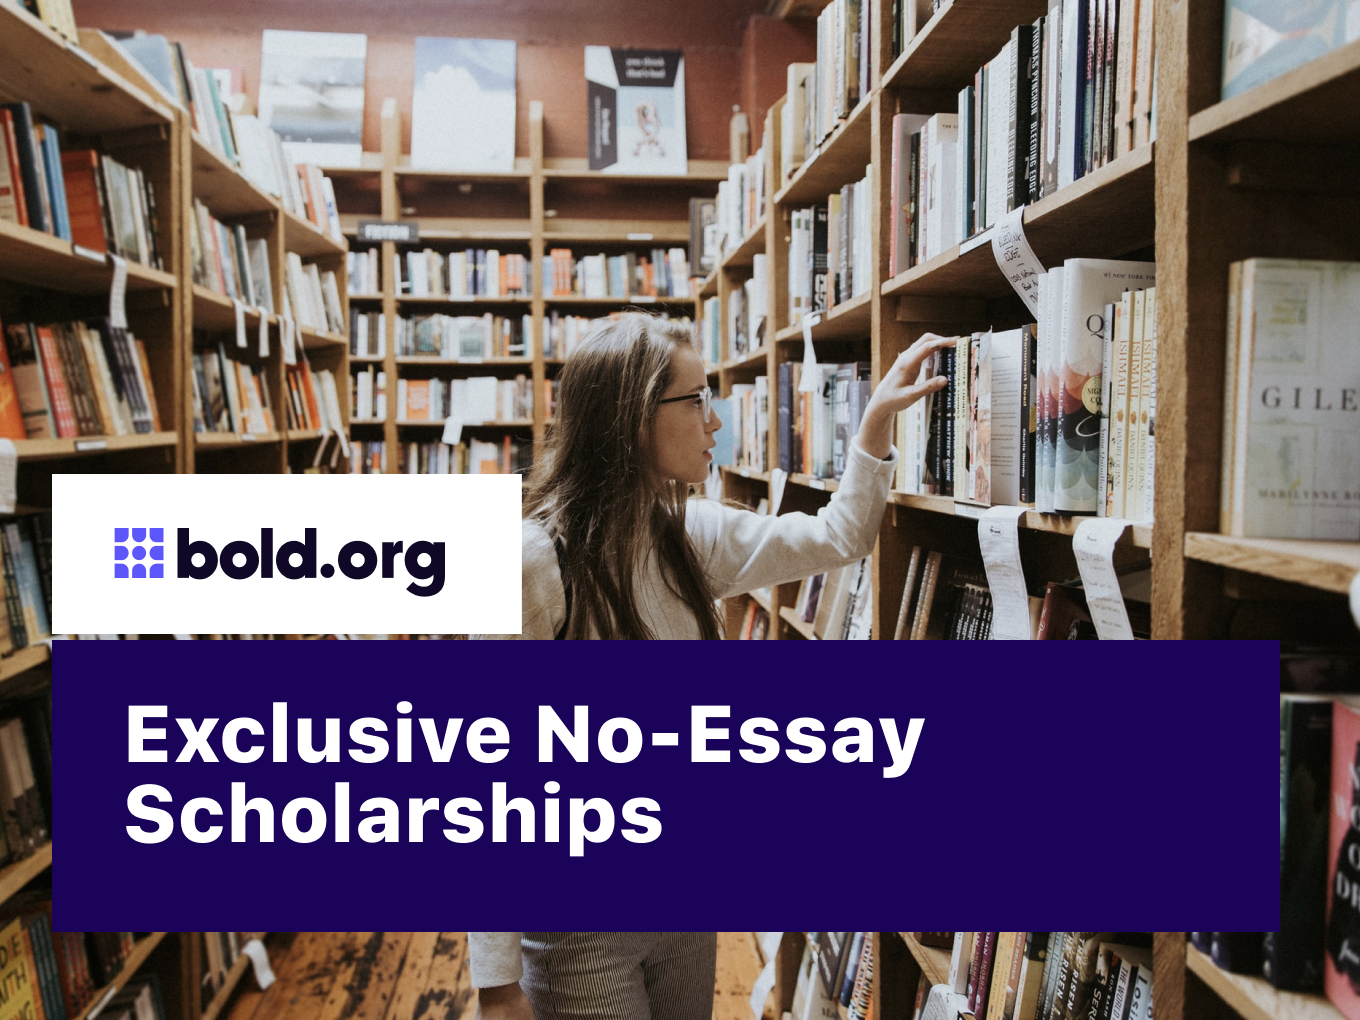 30 Exclusive No-Essay Scholarships